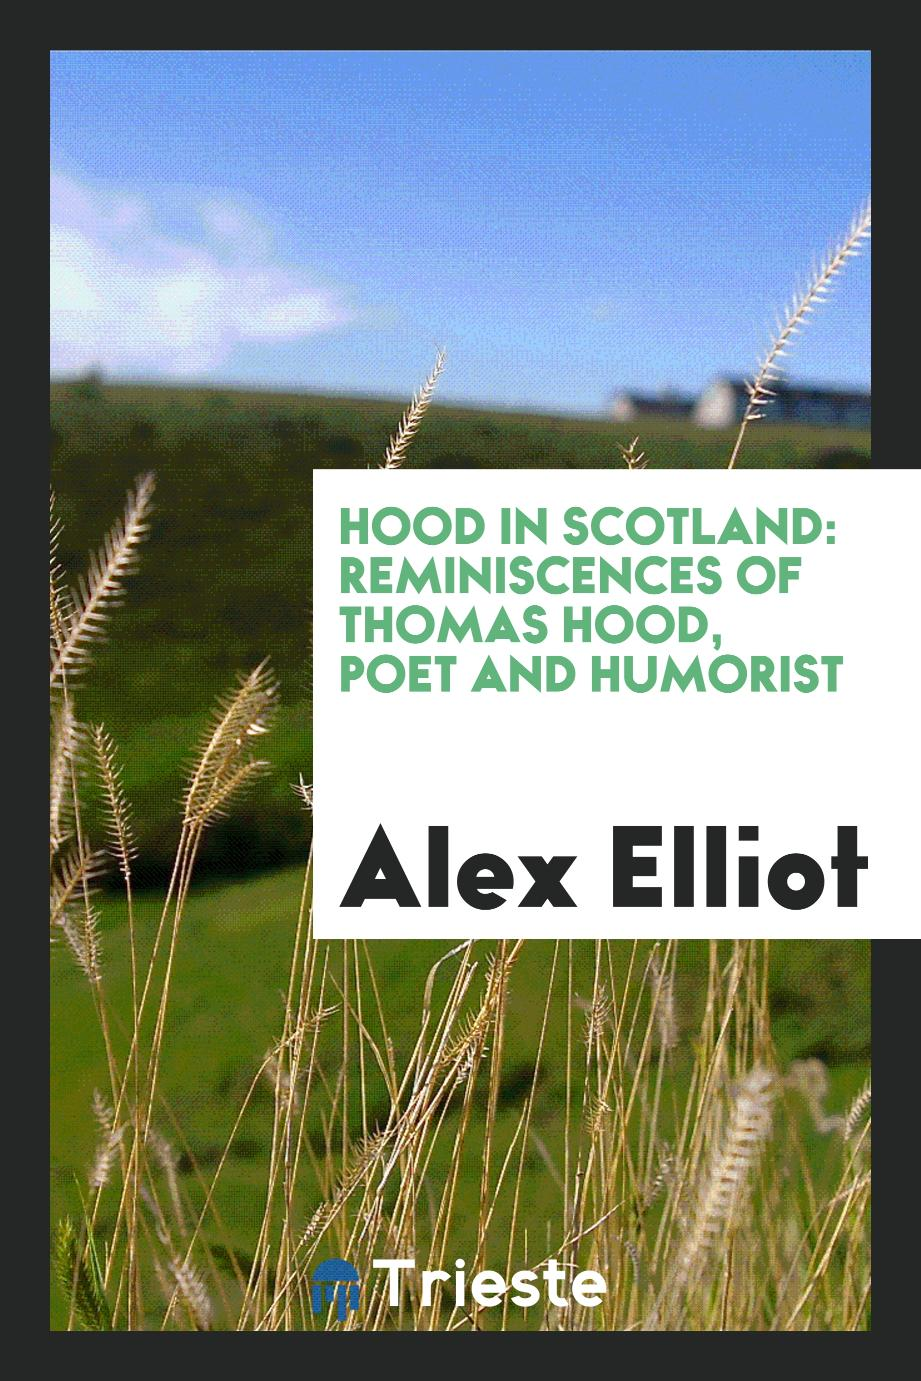 Hood in Scotland: Reminiscences of Thomas Hood, Poet and Humorist